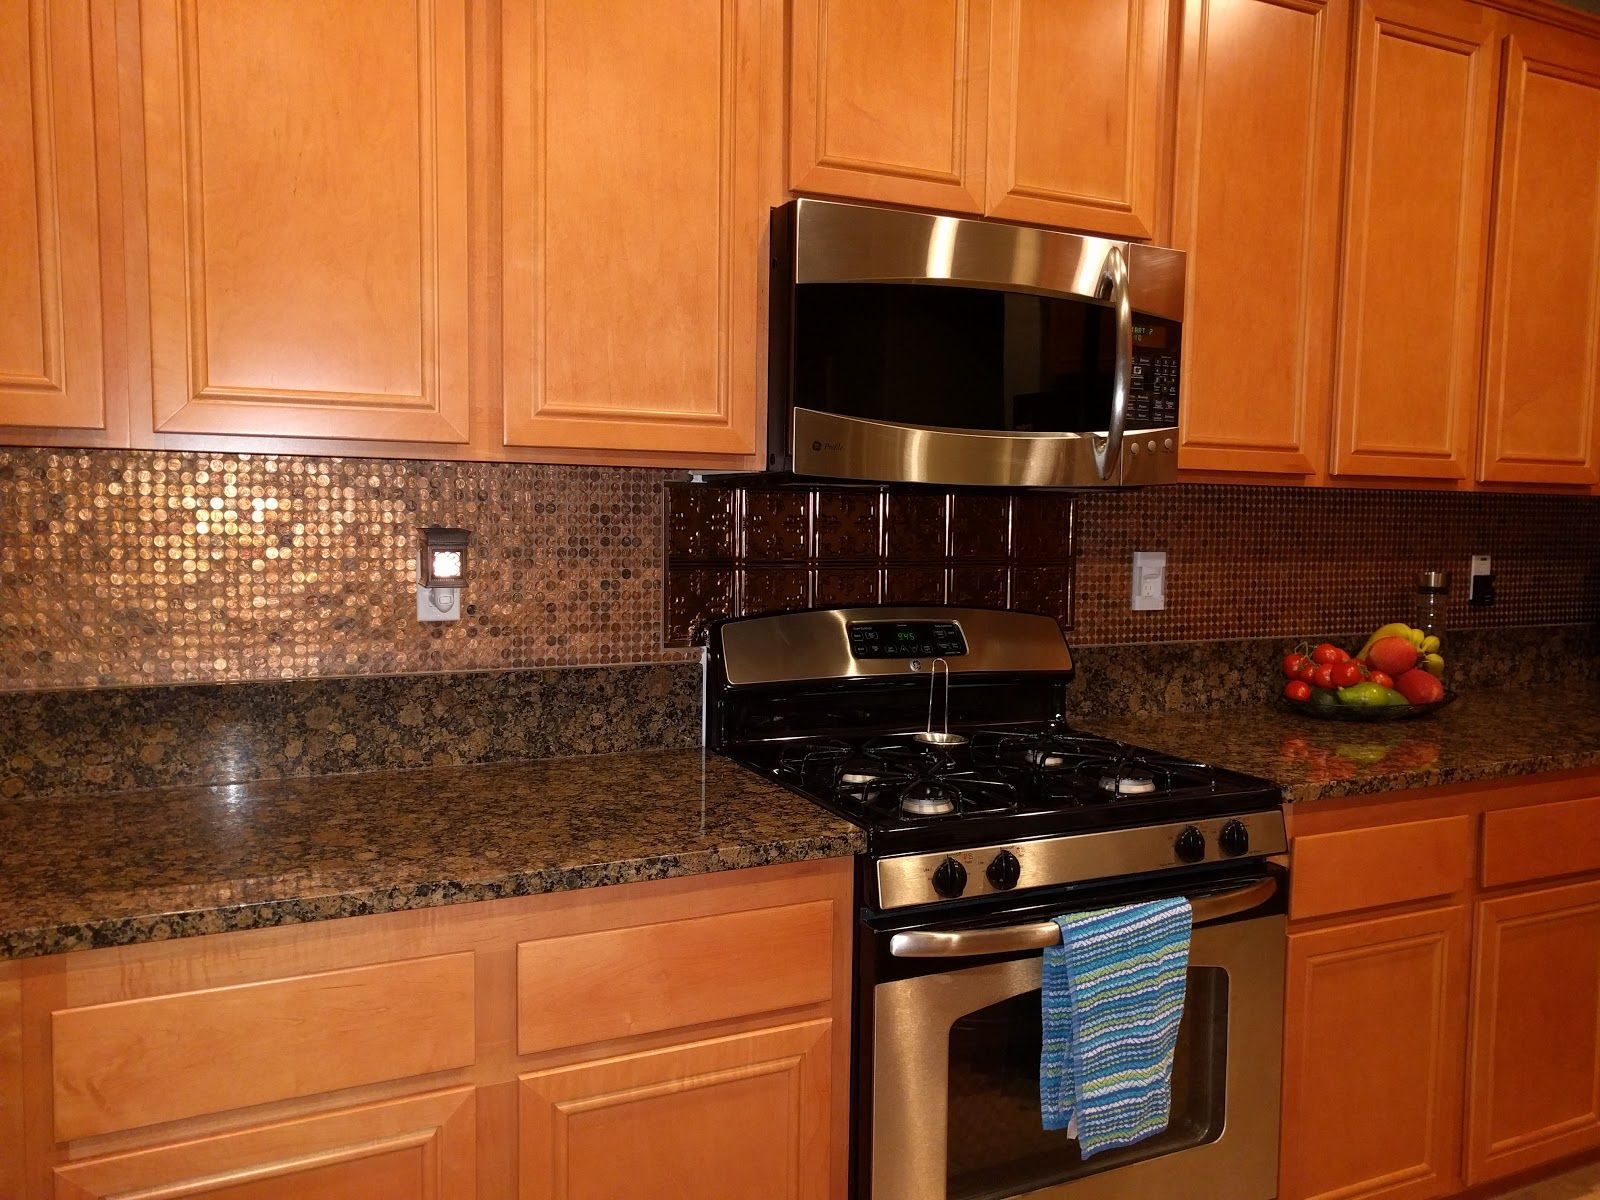 - Penny Backsplash While Cleaning I Had Some Change On The Counter